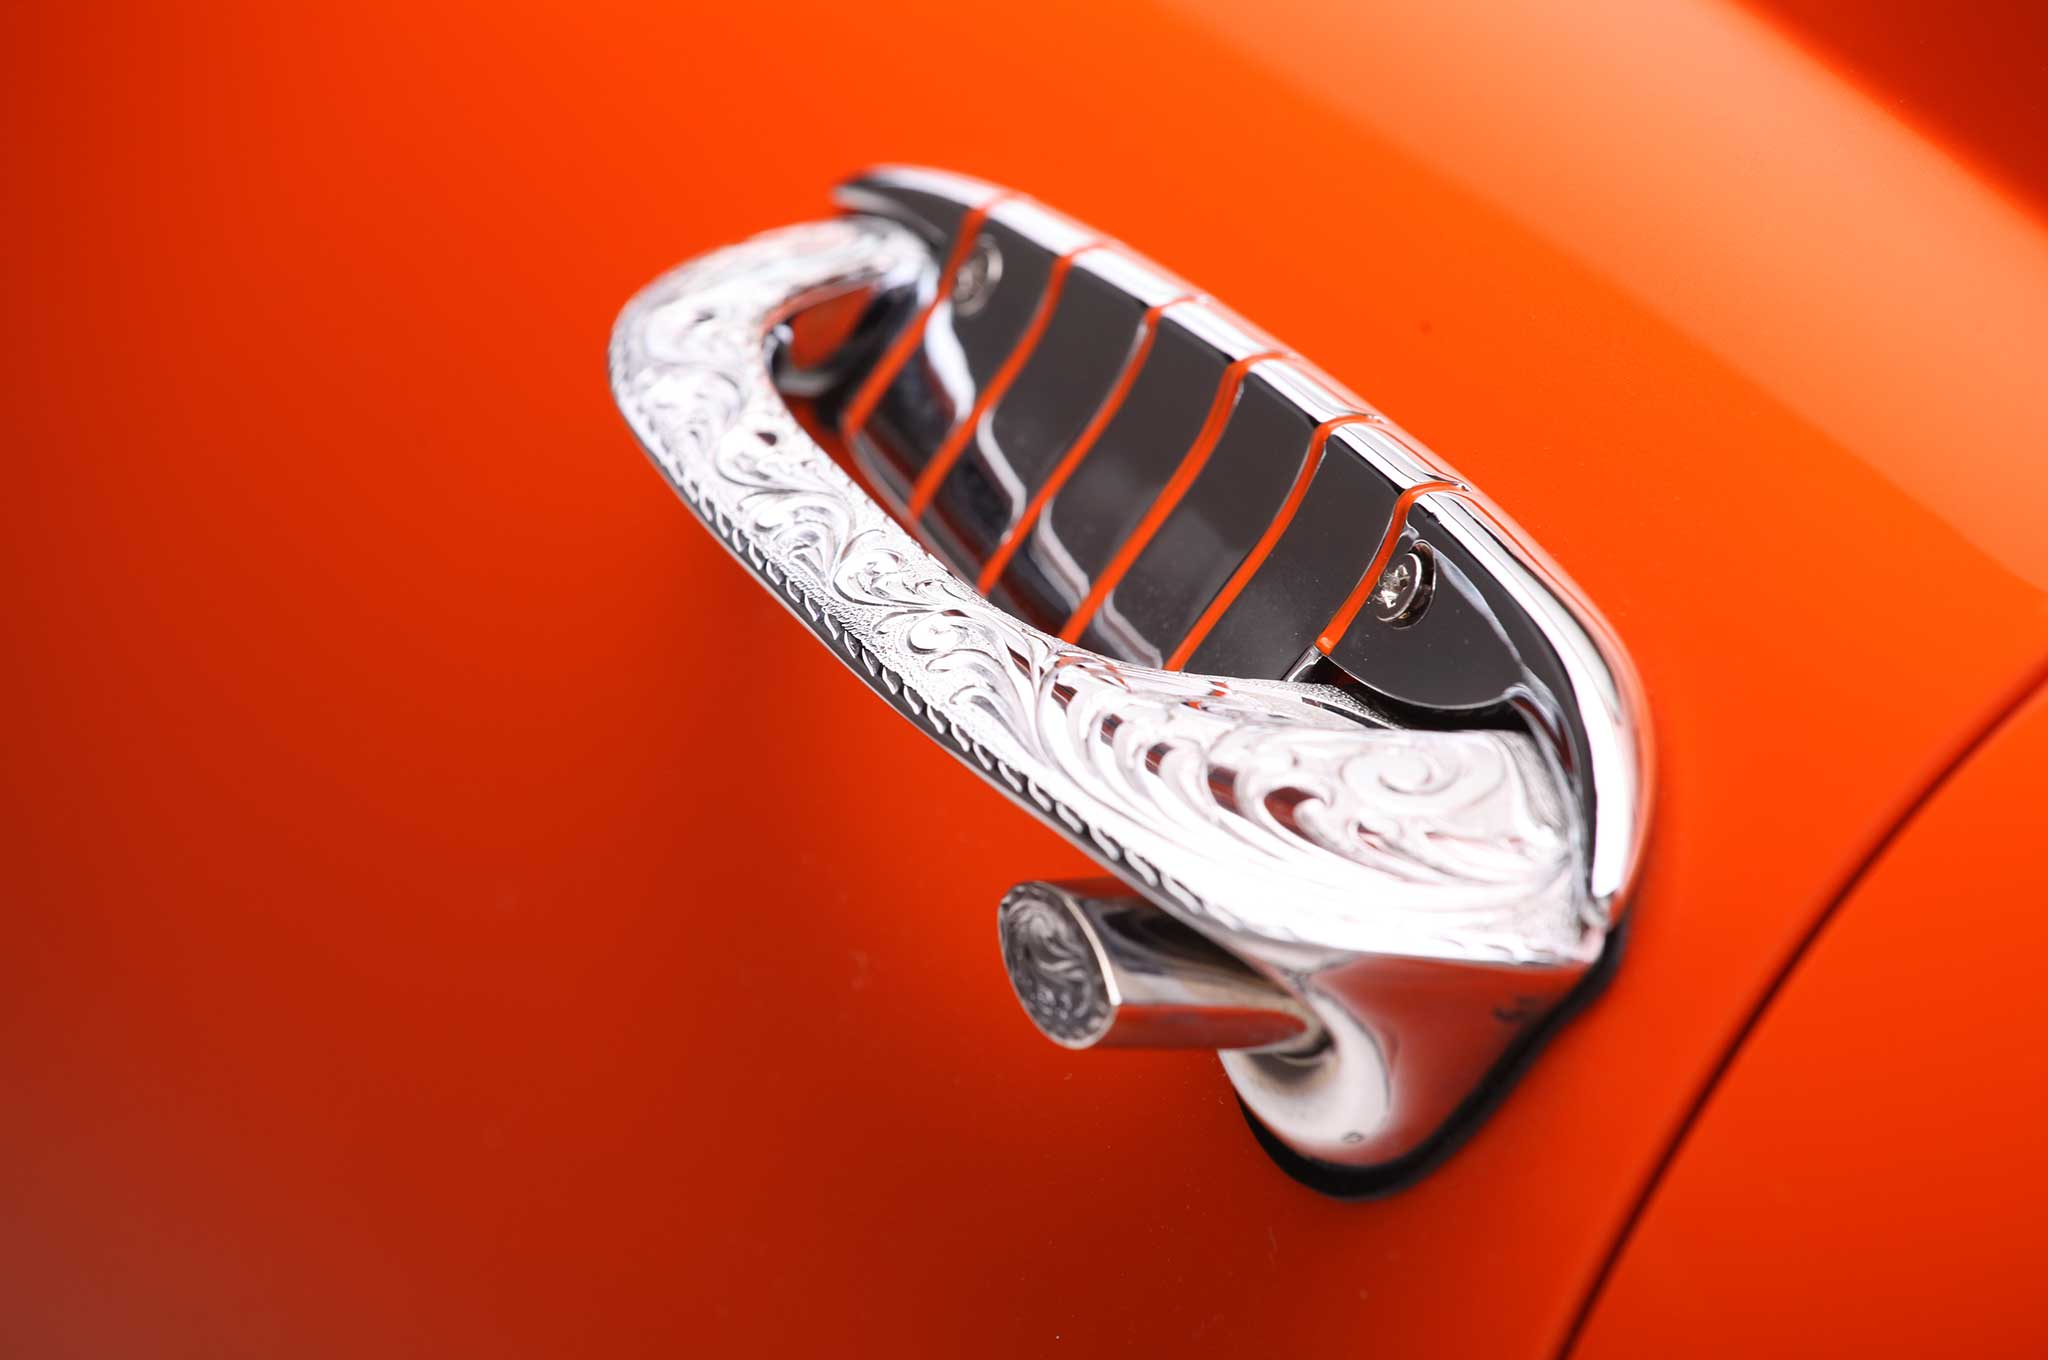 1958 chevrolet nomad door handle 020